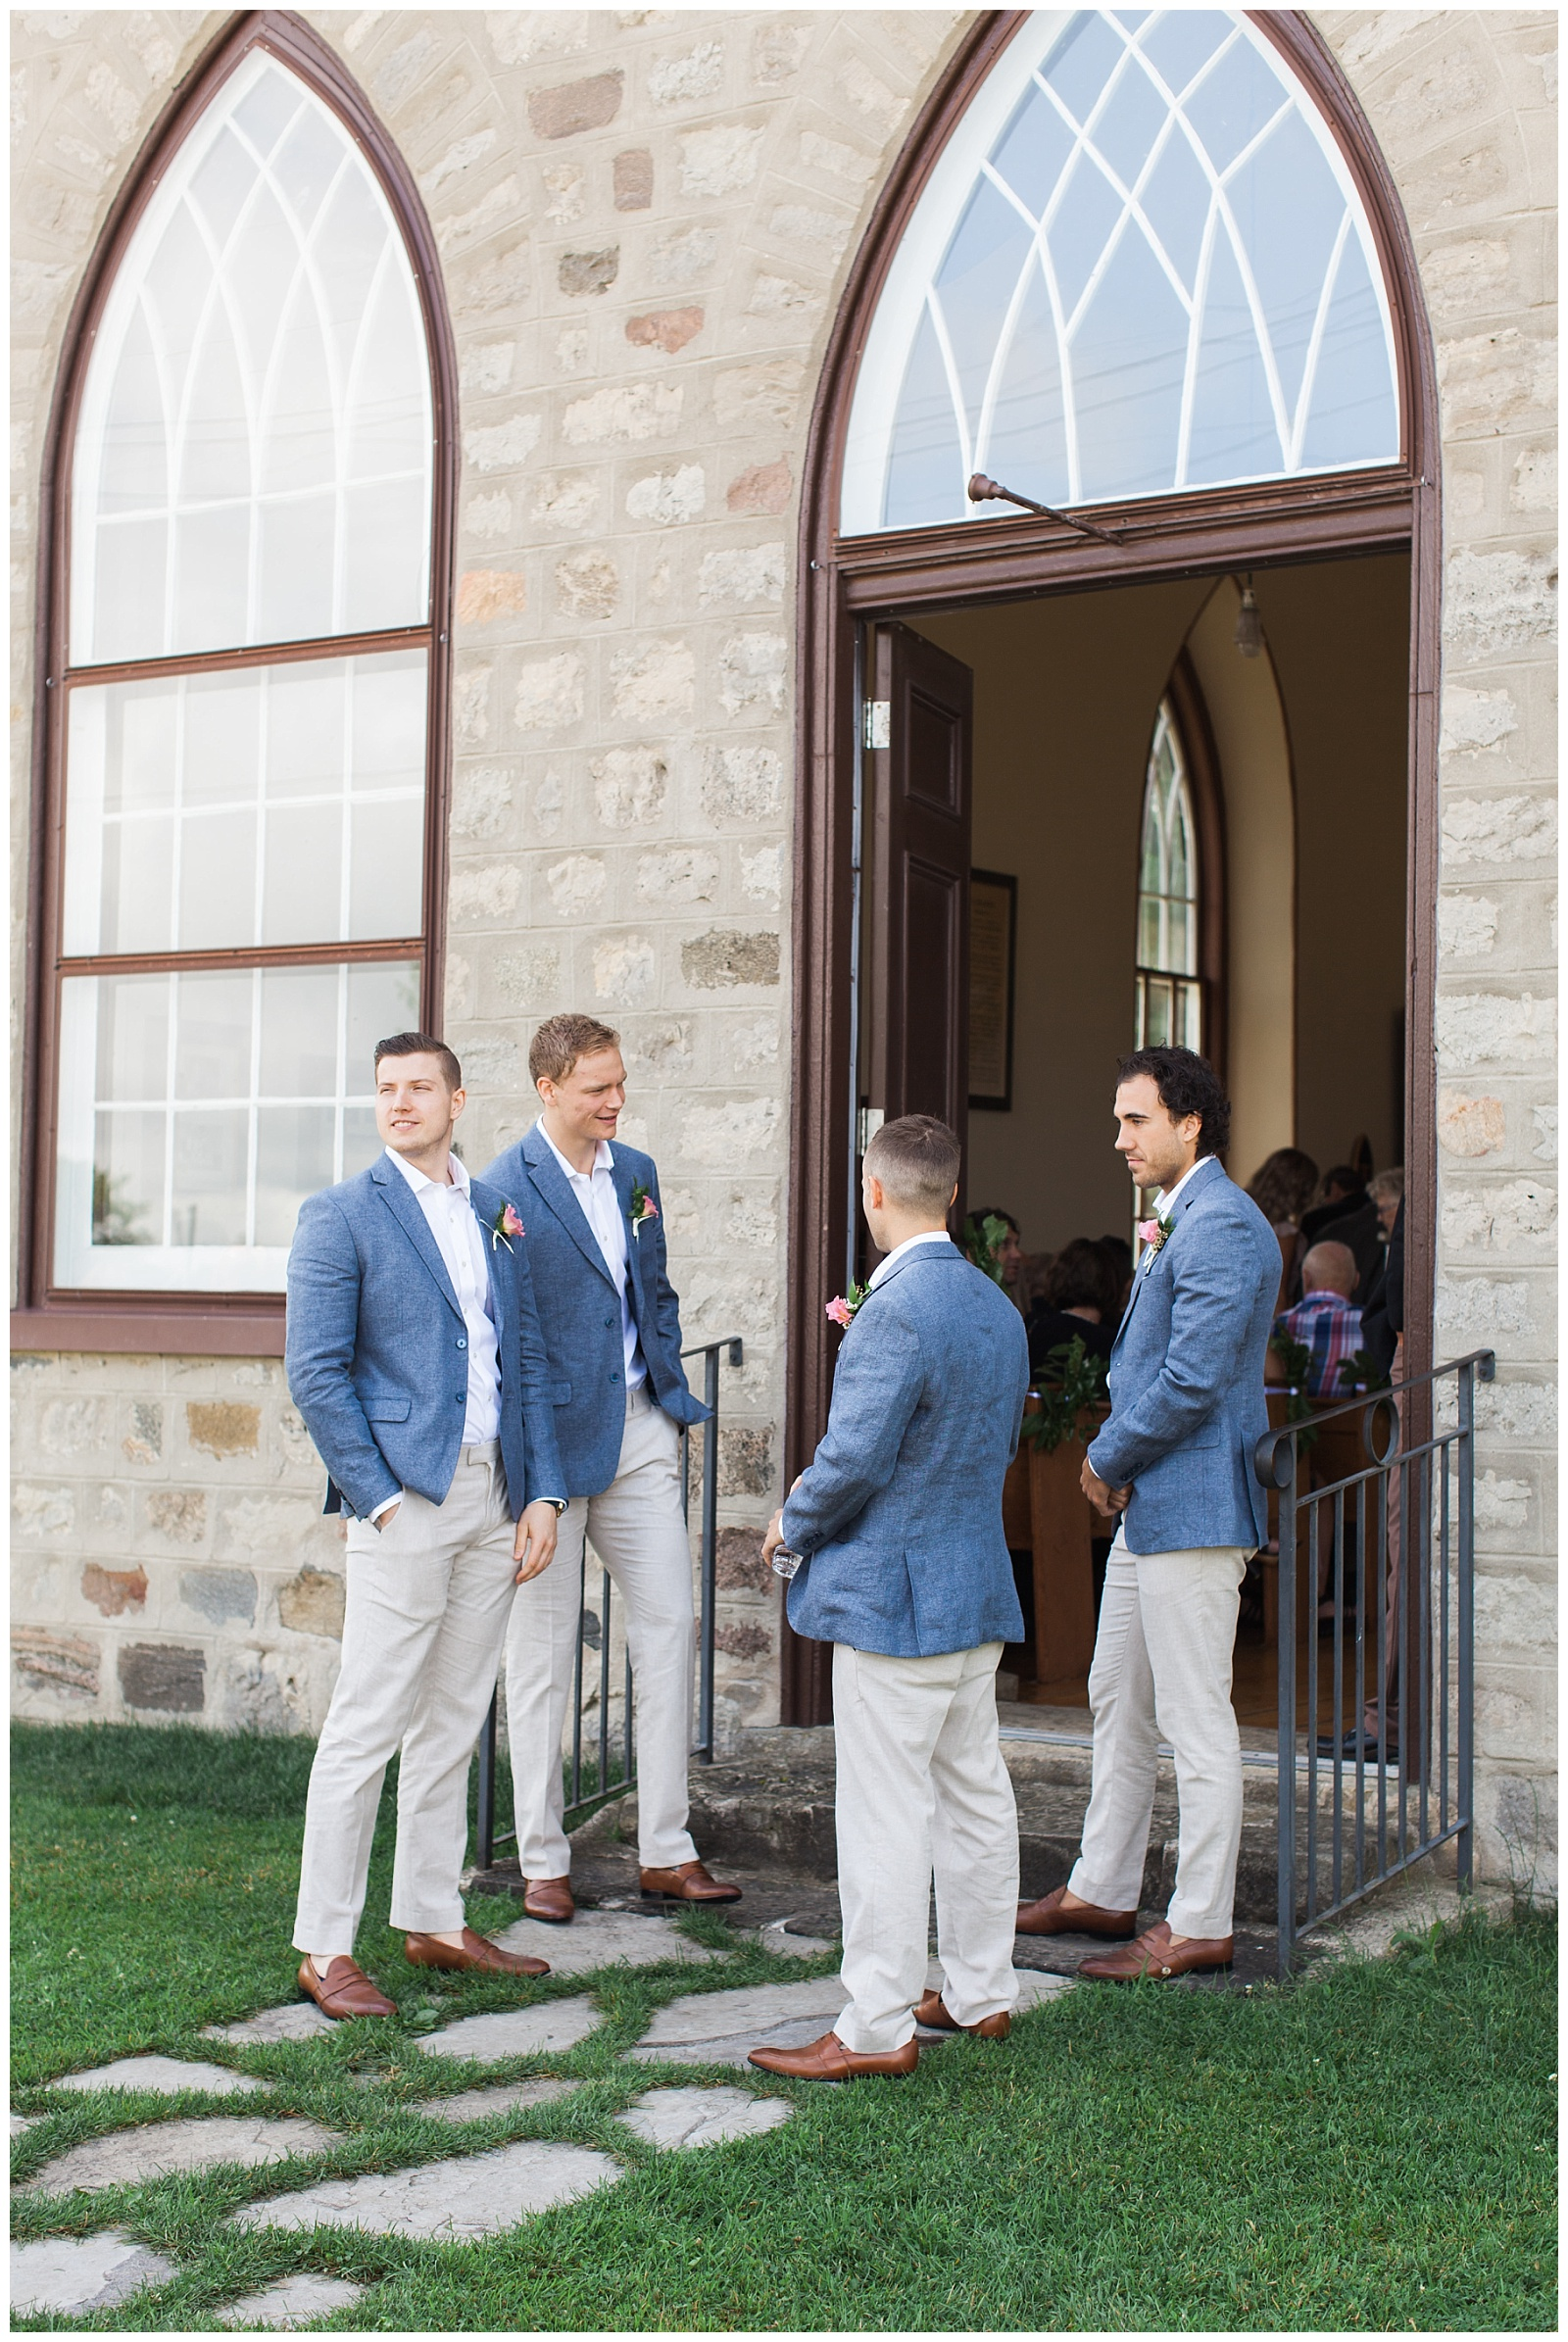 Groomsmen lining the door to the church at Guelph Ontario Wedding | Ontario Wedding Photographer | Toronto Wedding Photographer | 3photography